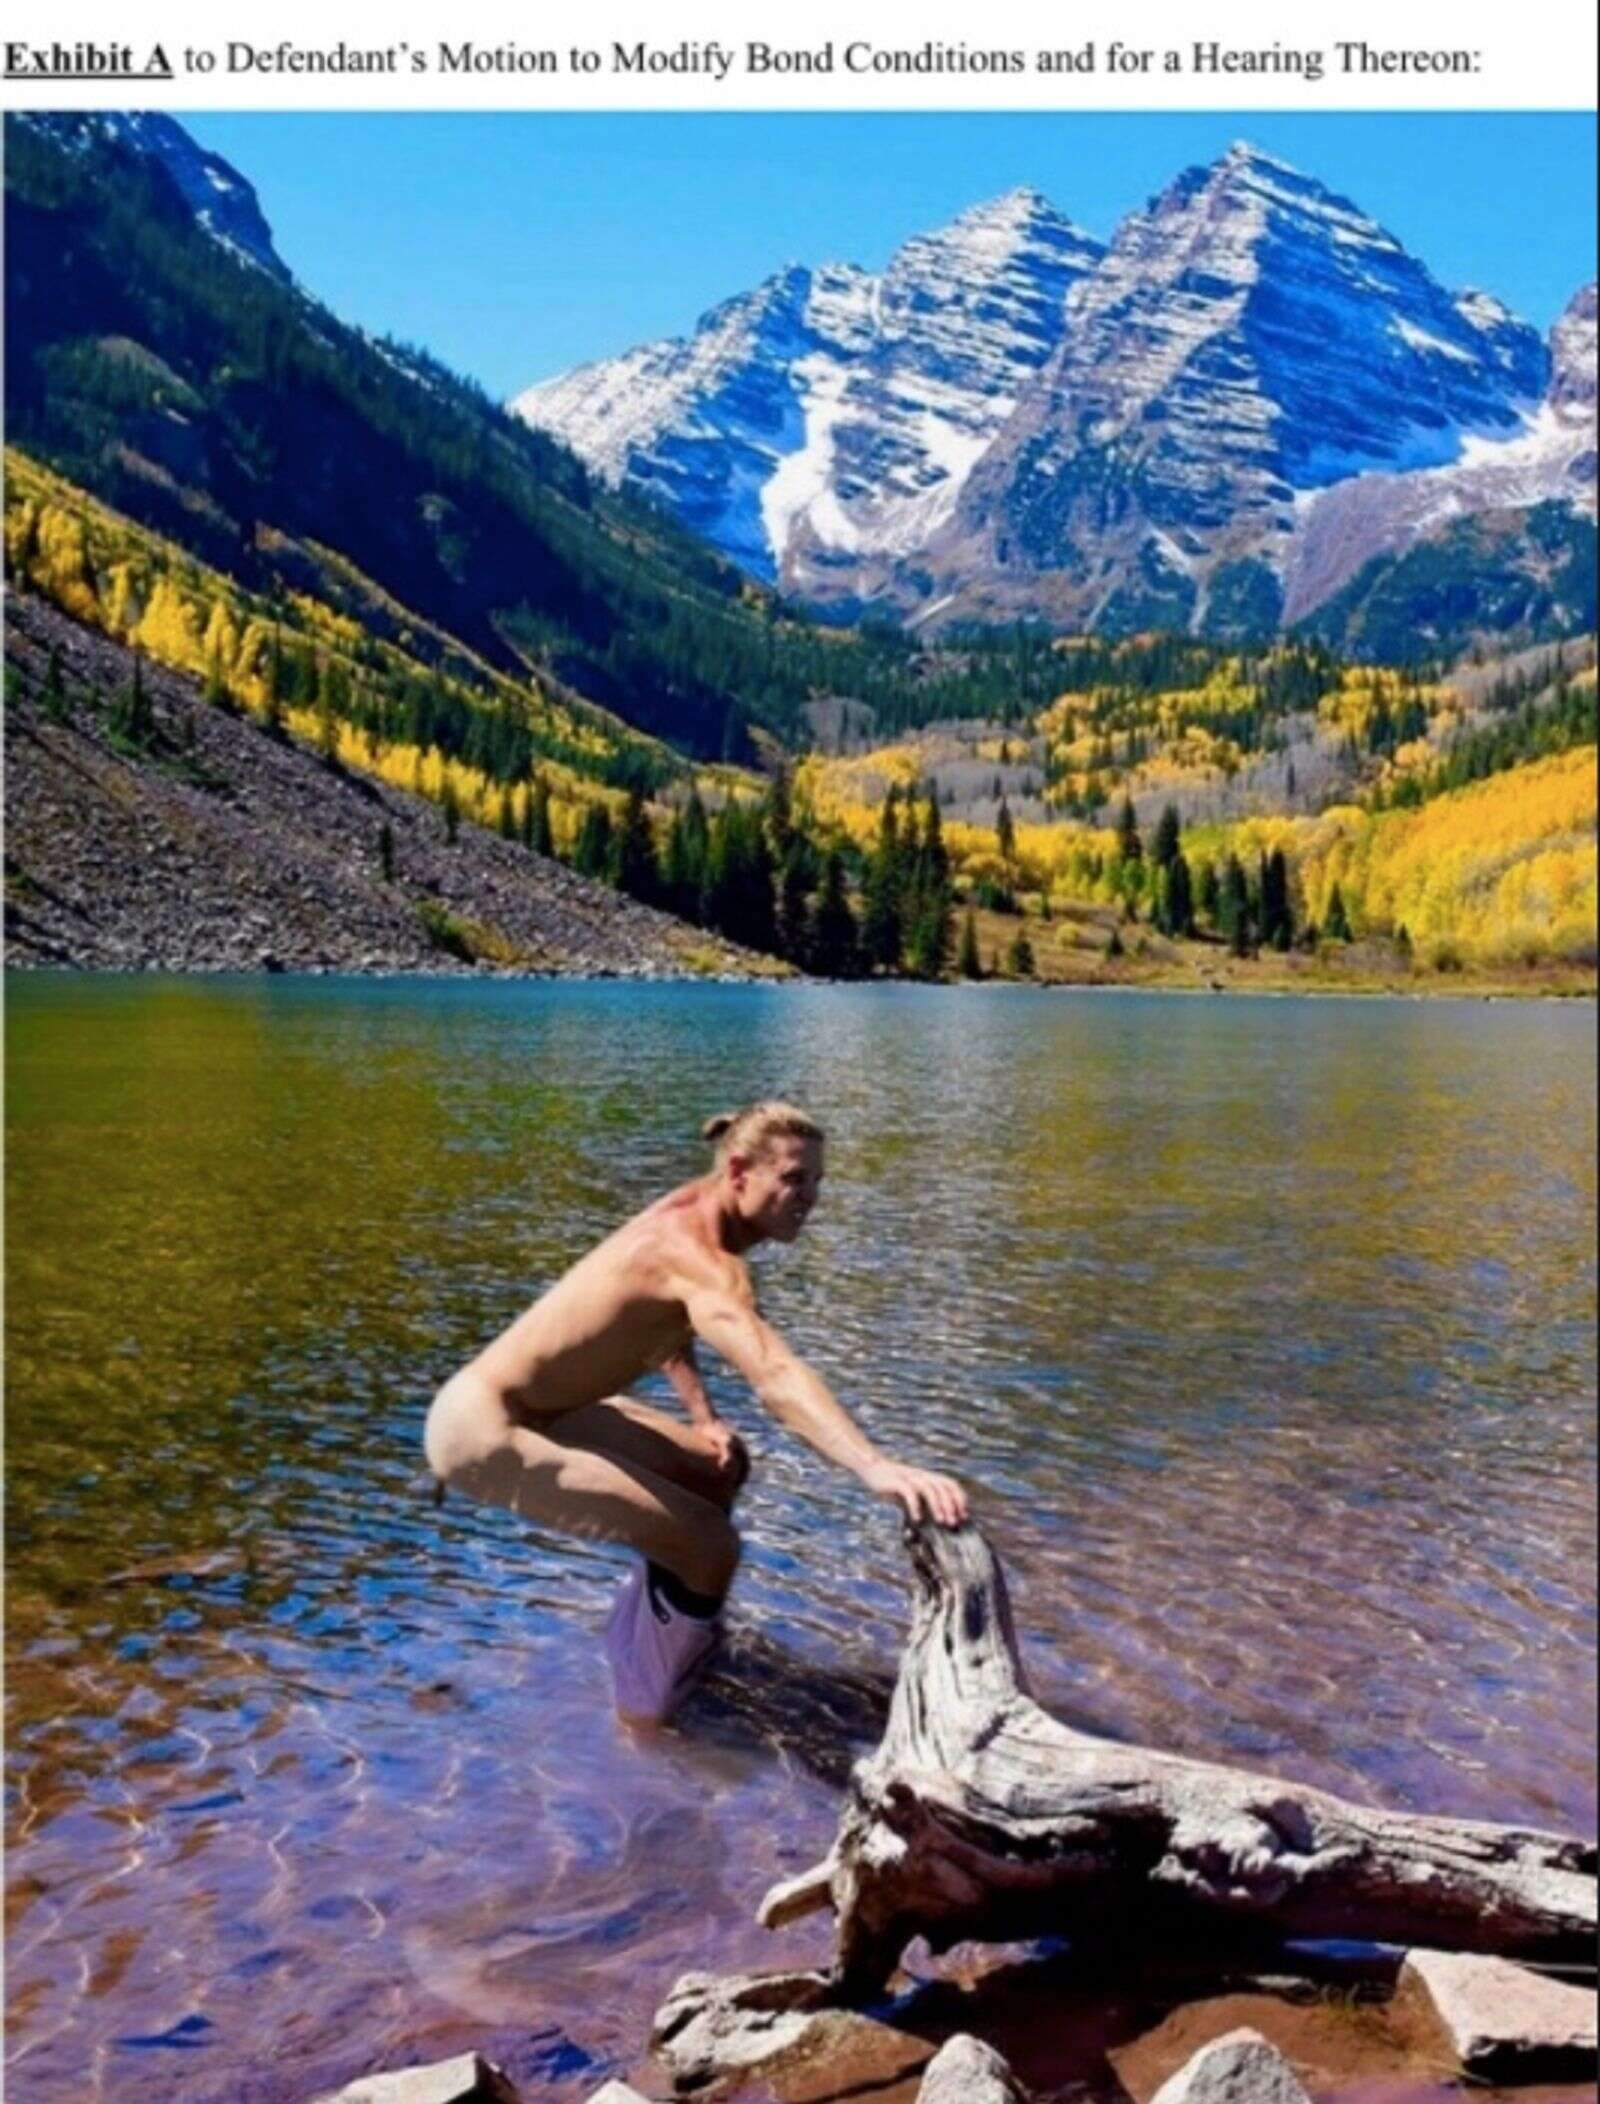 Exhibit A claims to show how Lesh photoshopped himself on a stock photo of Maroon Bells Lake.